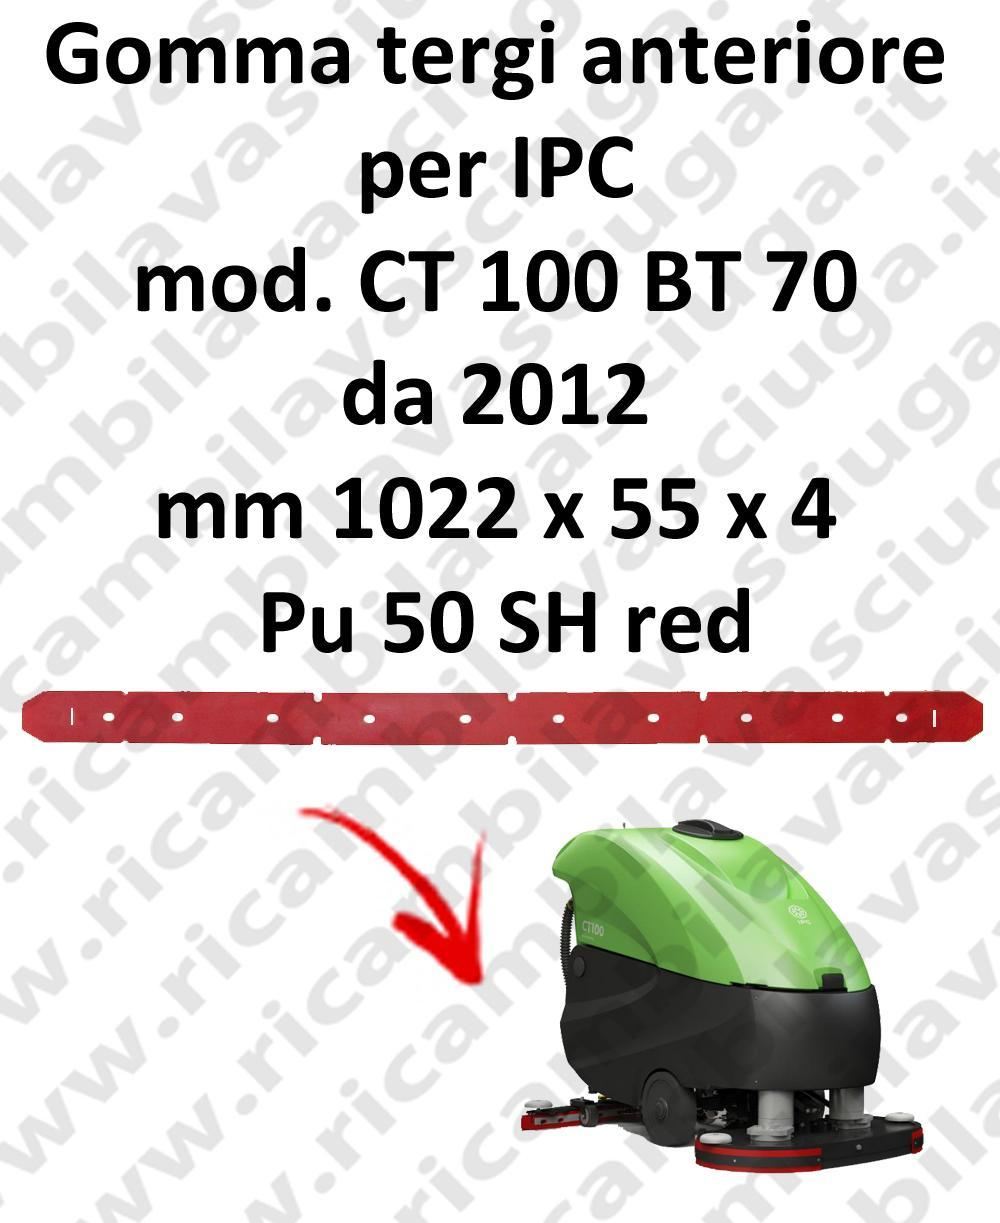 CT 100 BT 70 from 2012 squeegee rubber front for IPC